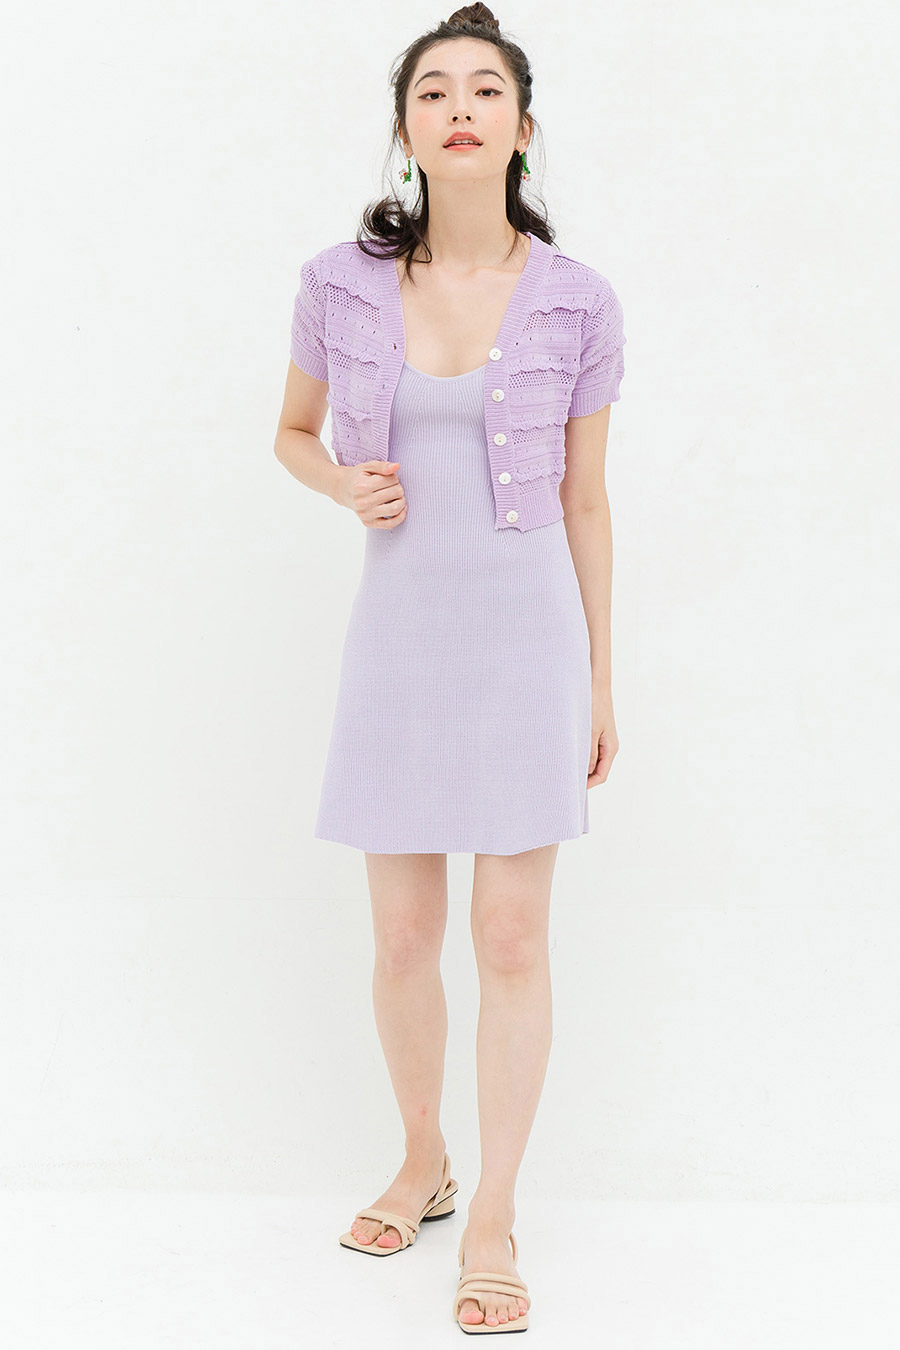 LAURA TOP - LAVENDER